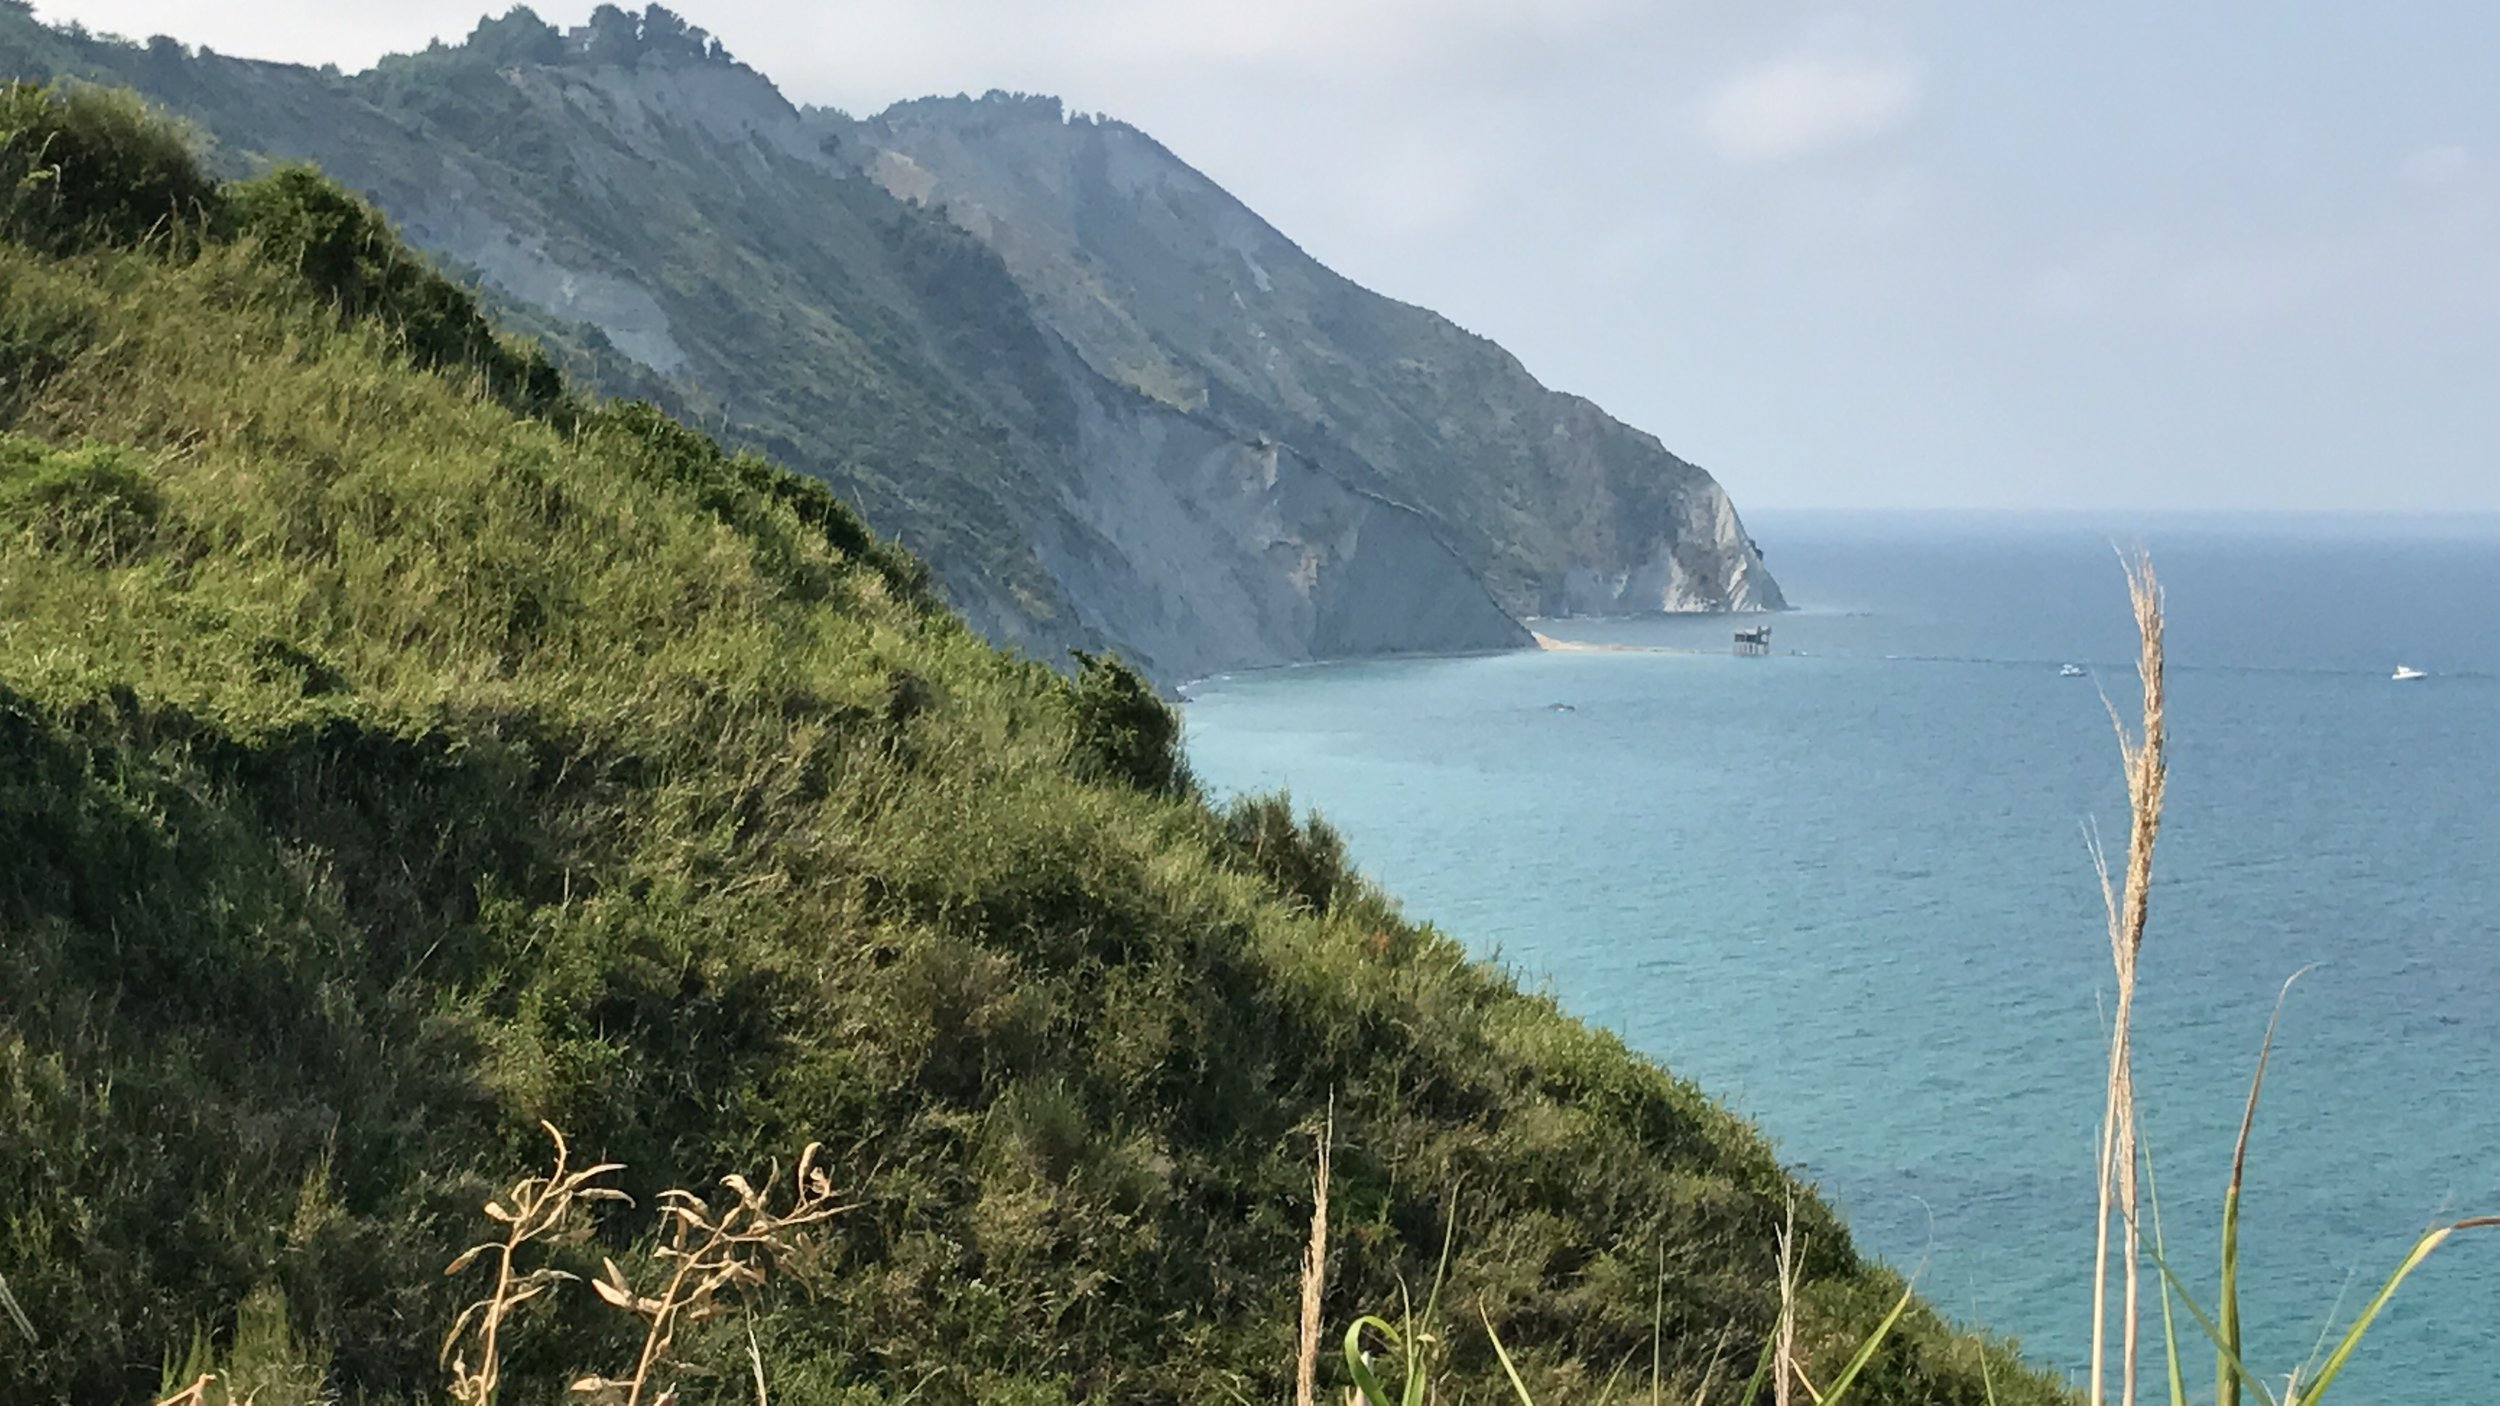 Central Italy - Rolling Greens, Vivid Reds & Deep Blues